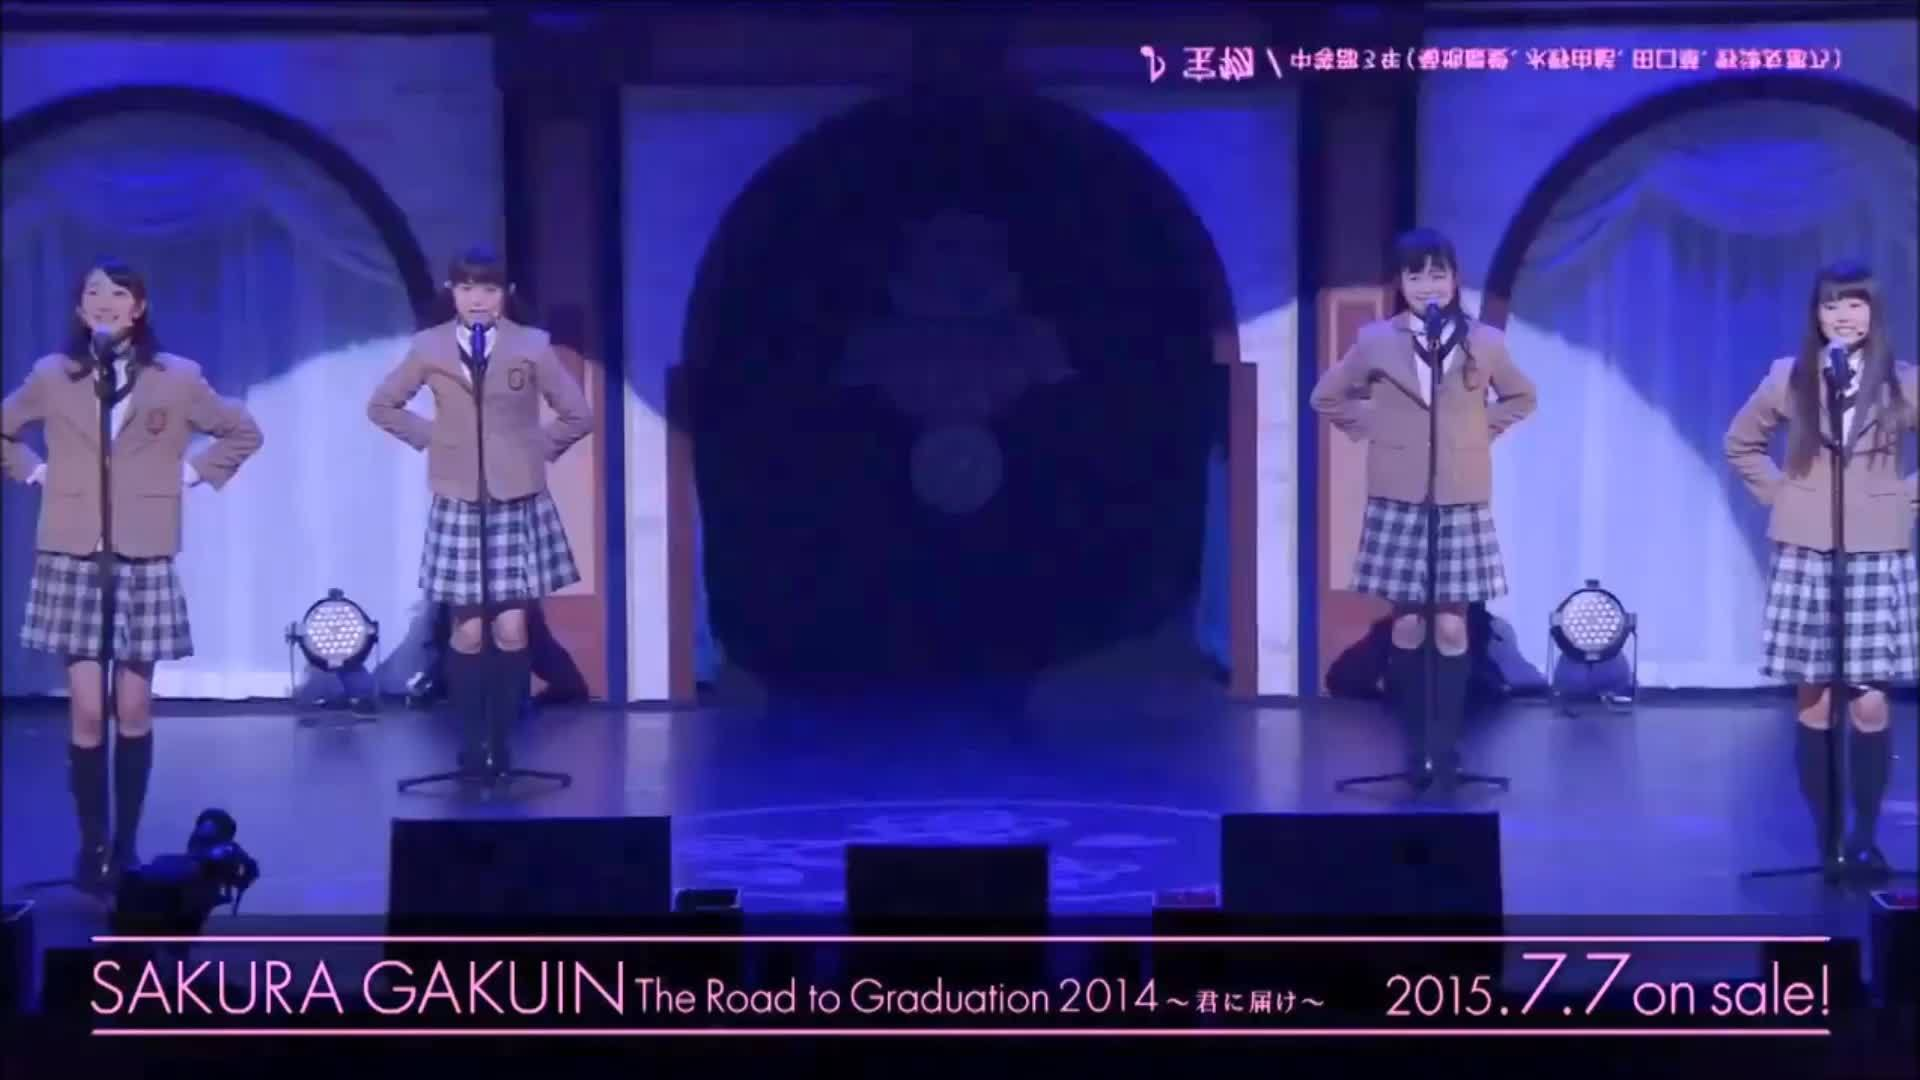 sakuragakuin, This has the potential to become my absolute favorite live performance of theirs. (reddit) GIFs